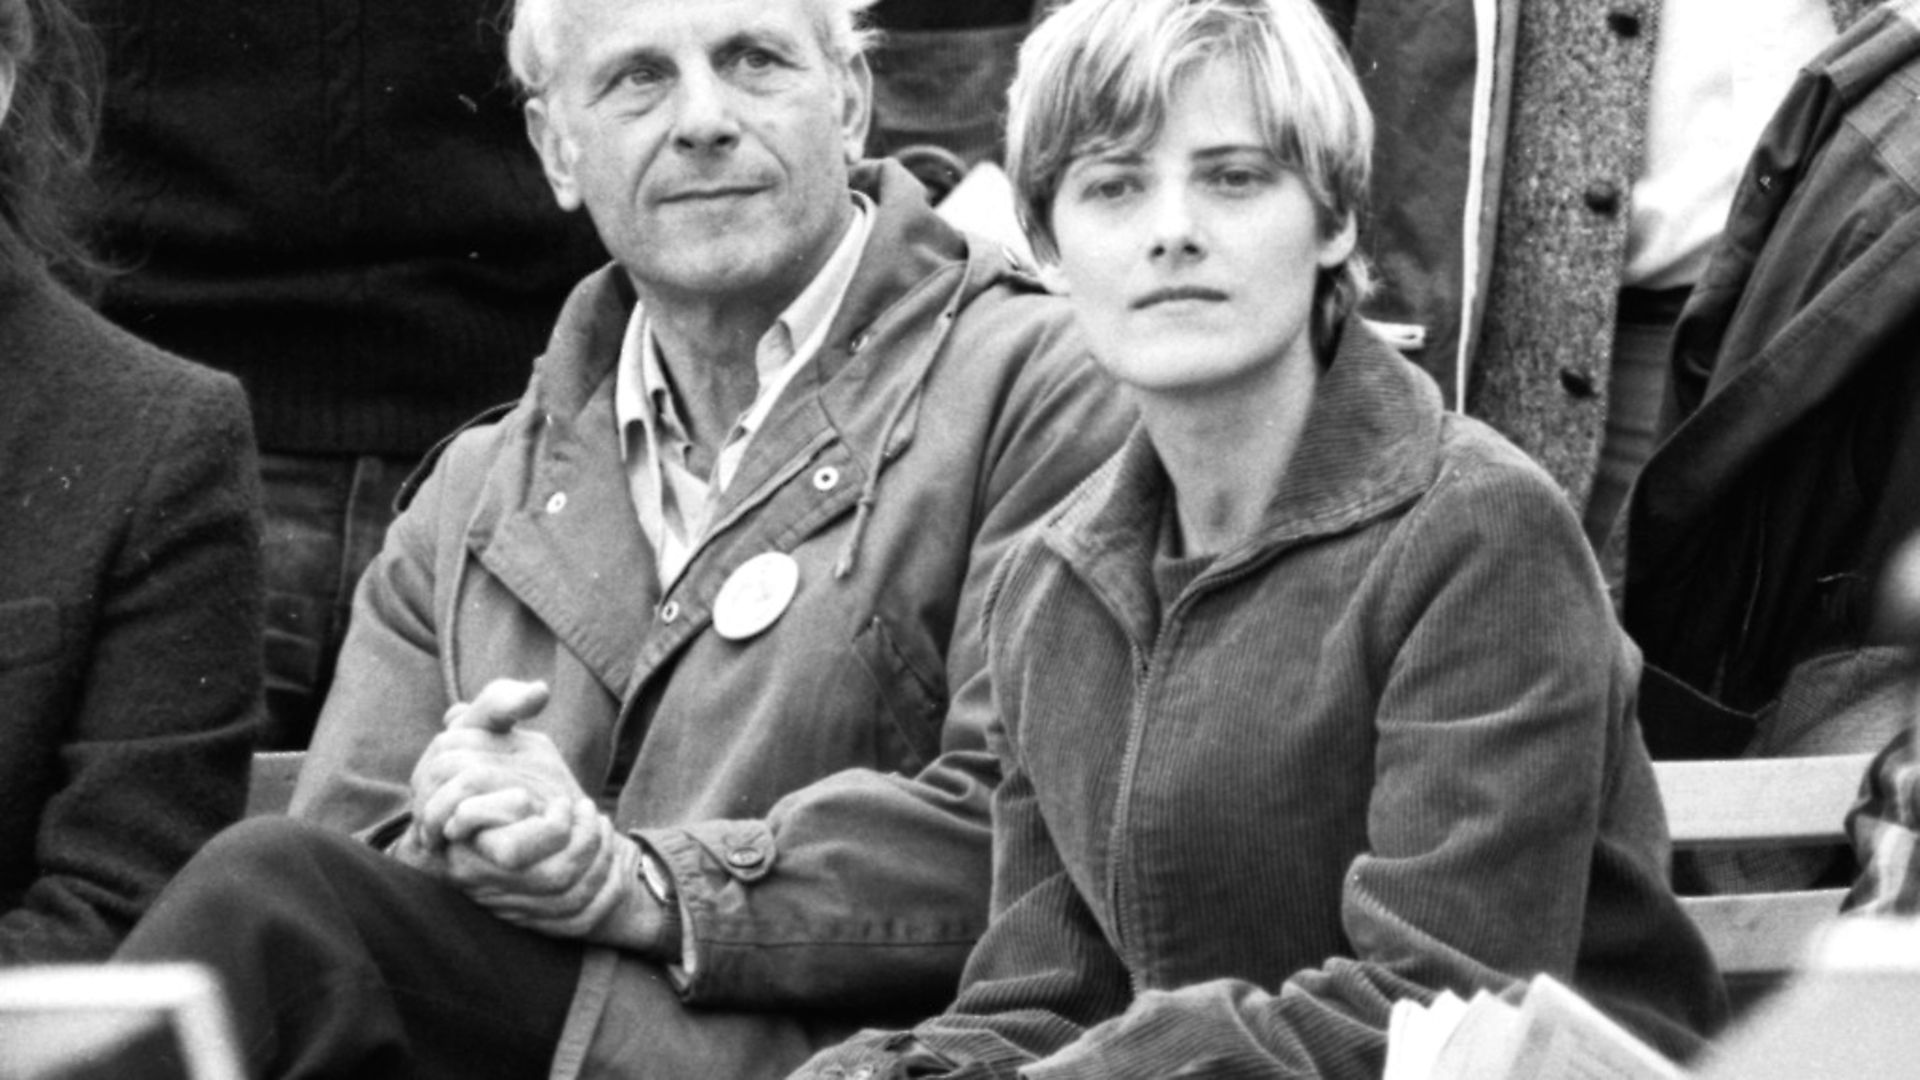 Petra Kelly with Gert Bastian at a peace rally in Bonn, 1981. Picture: Klaus Roseullstein bild via Getty Images - Credit: ullstein bild via Getty Images